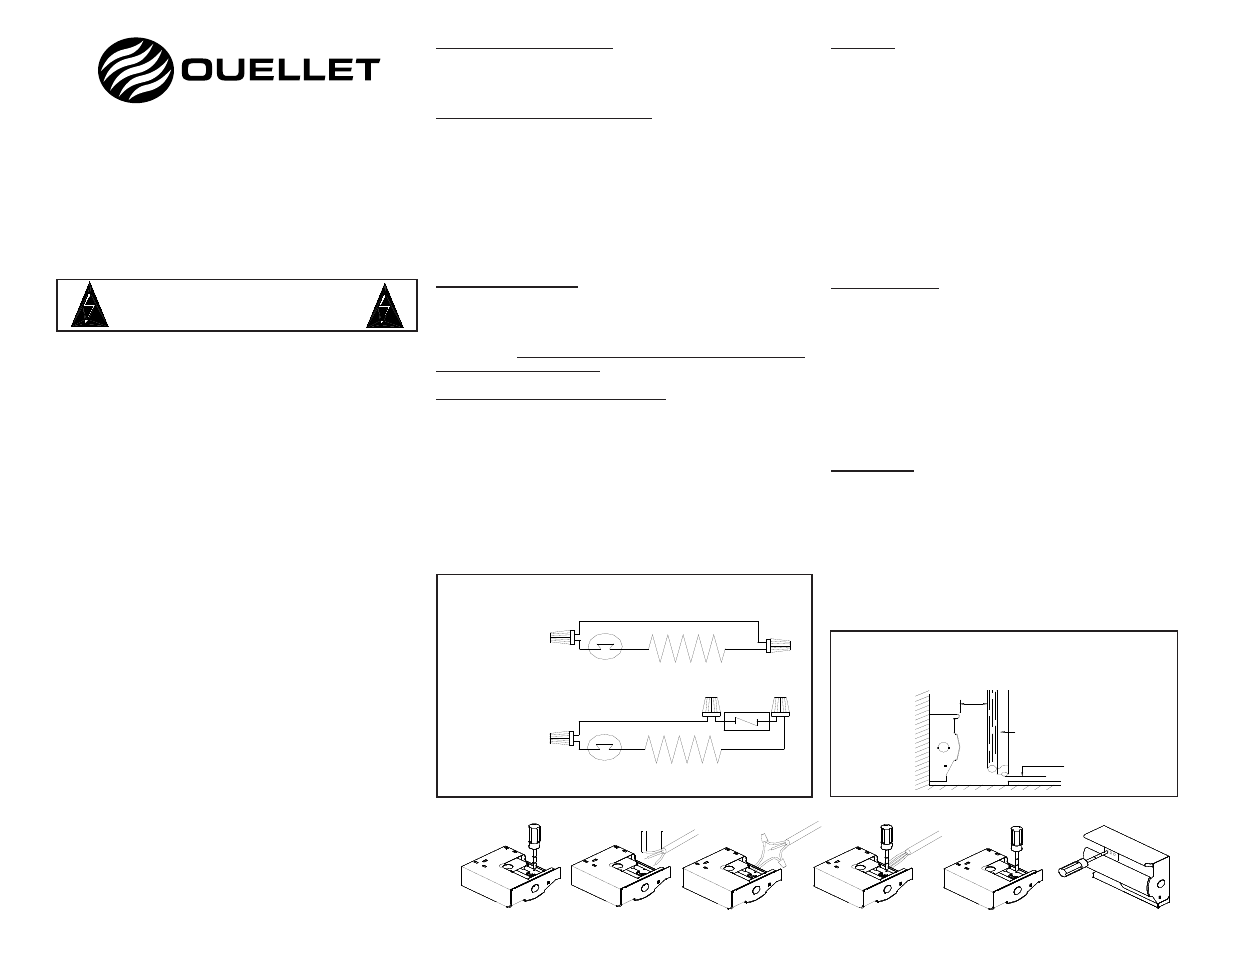 ouellet ofm user manual